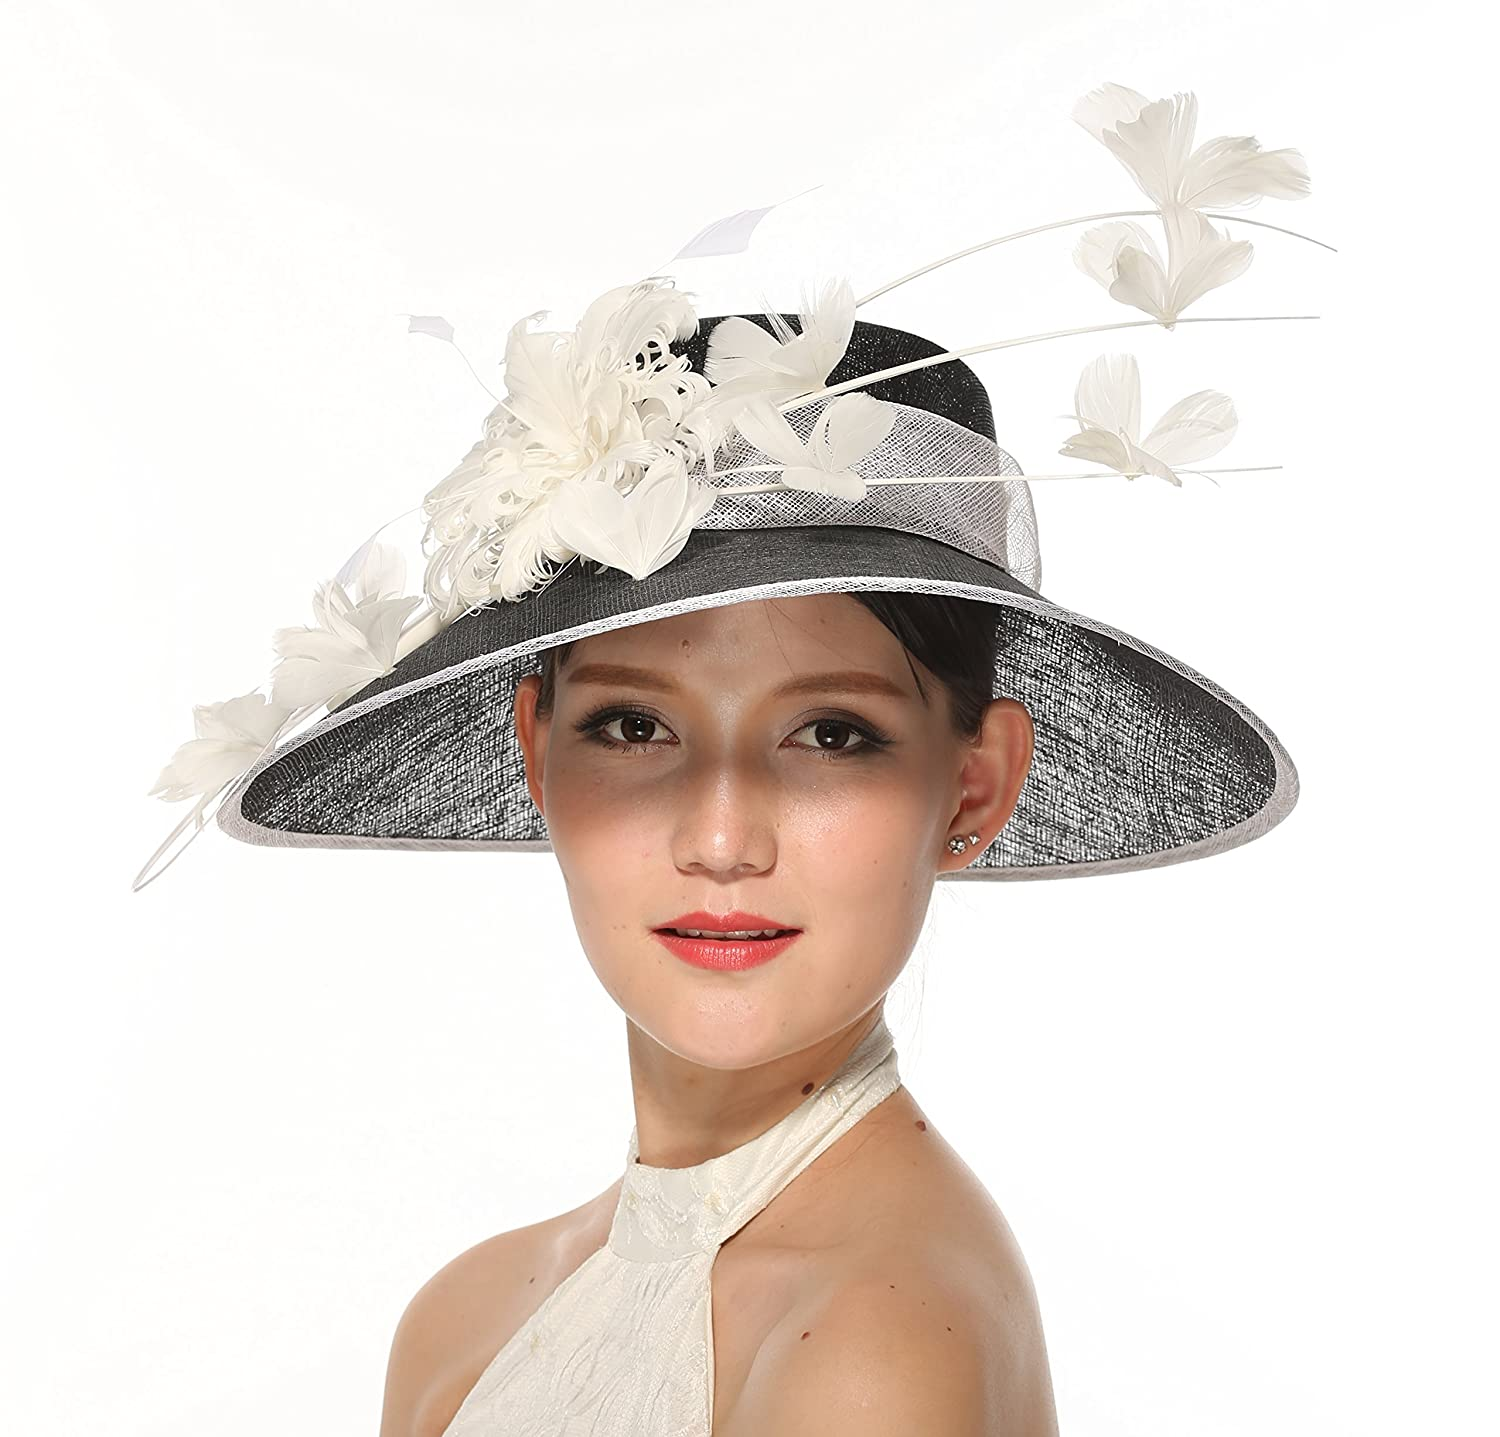 Gorgeous Wide Brim Sinamay Hat Butterfly Floral Feathers Derby Floppy Dress  Black w White 002 at Amazon Women s Clothing store  e98e404b2a1